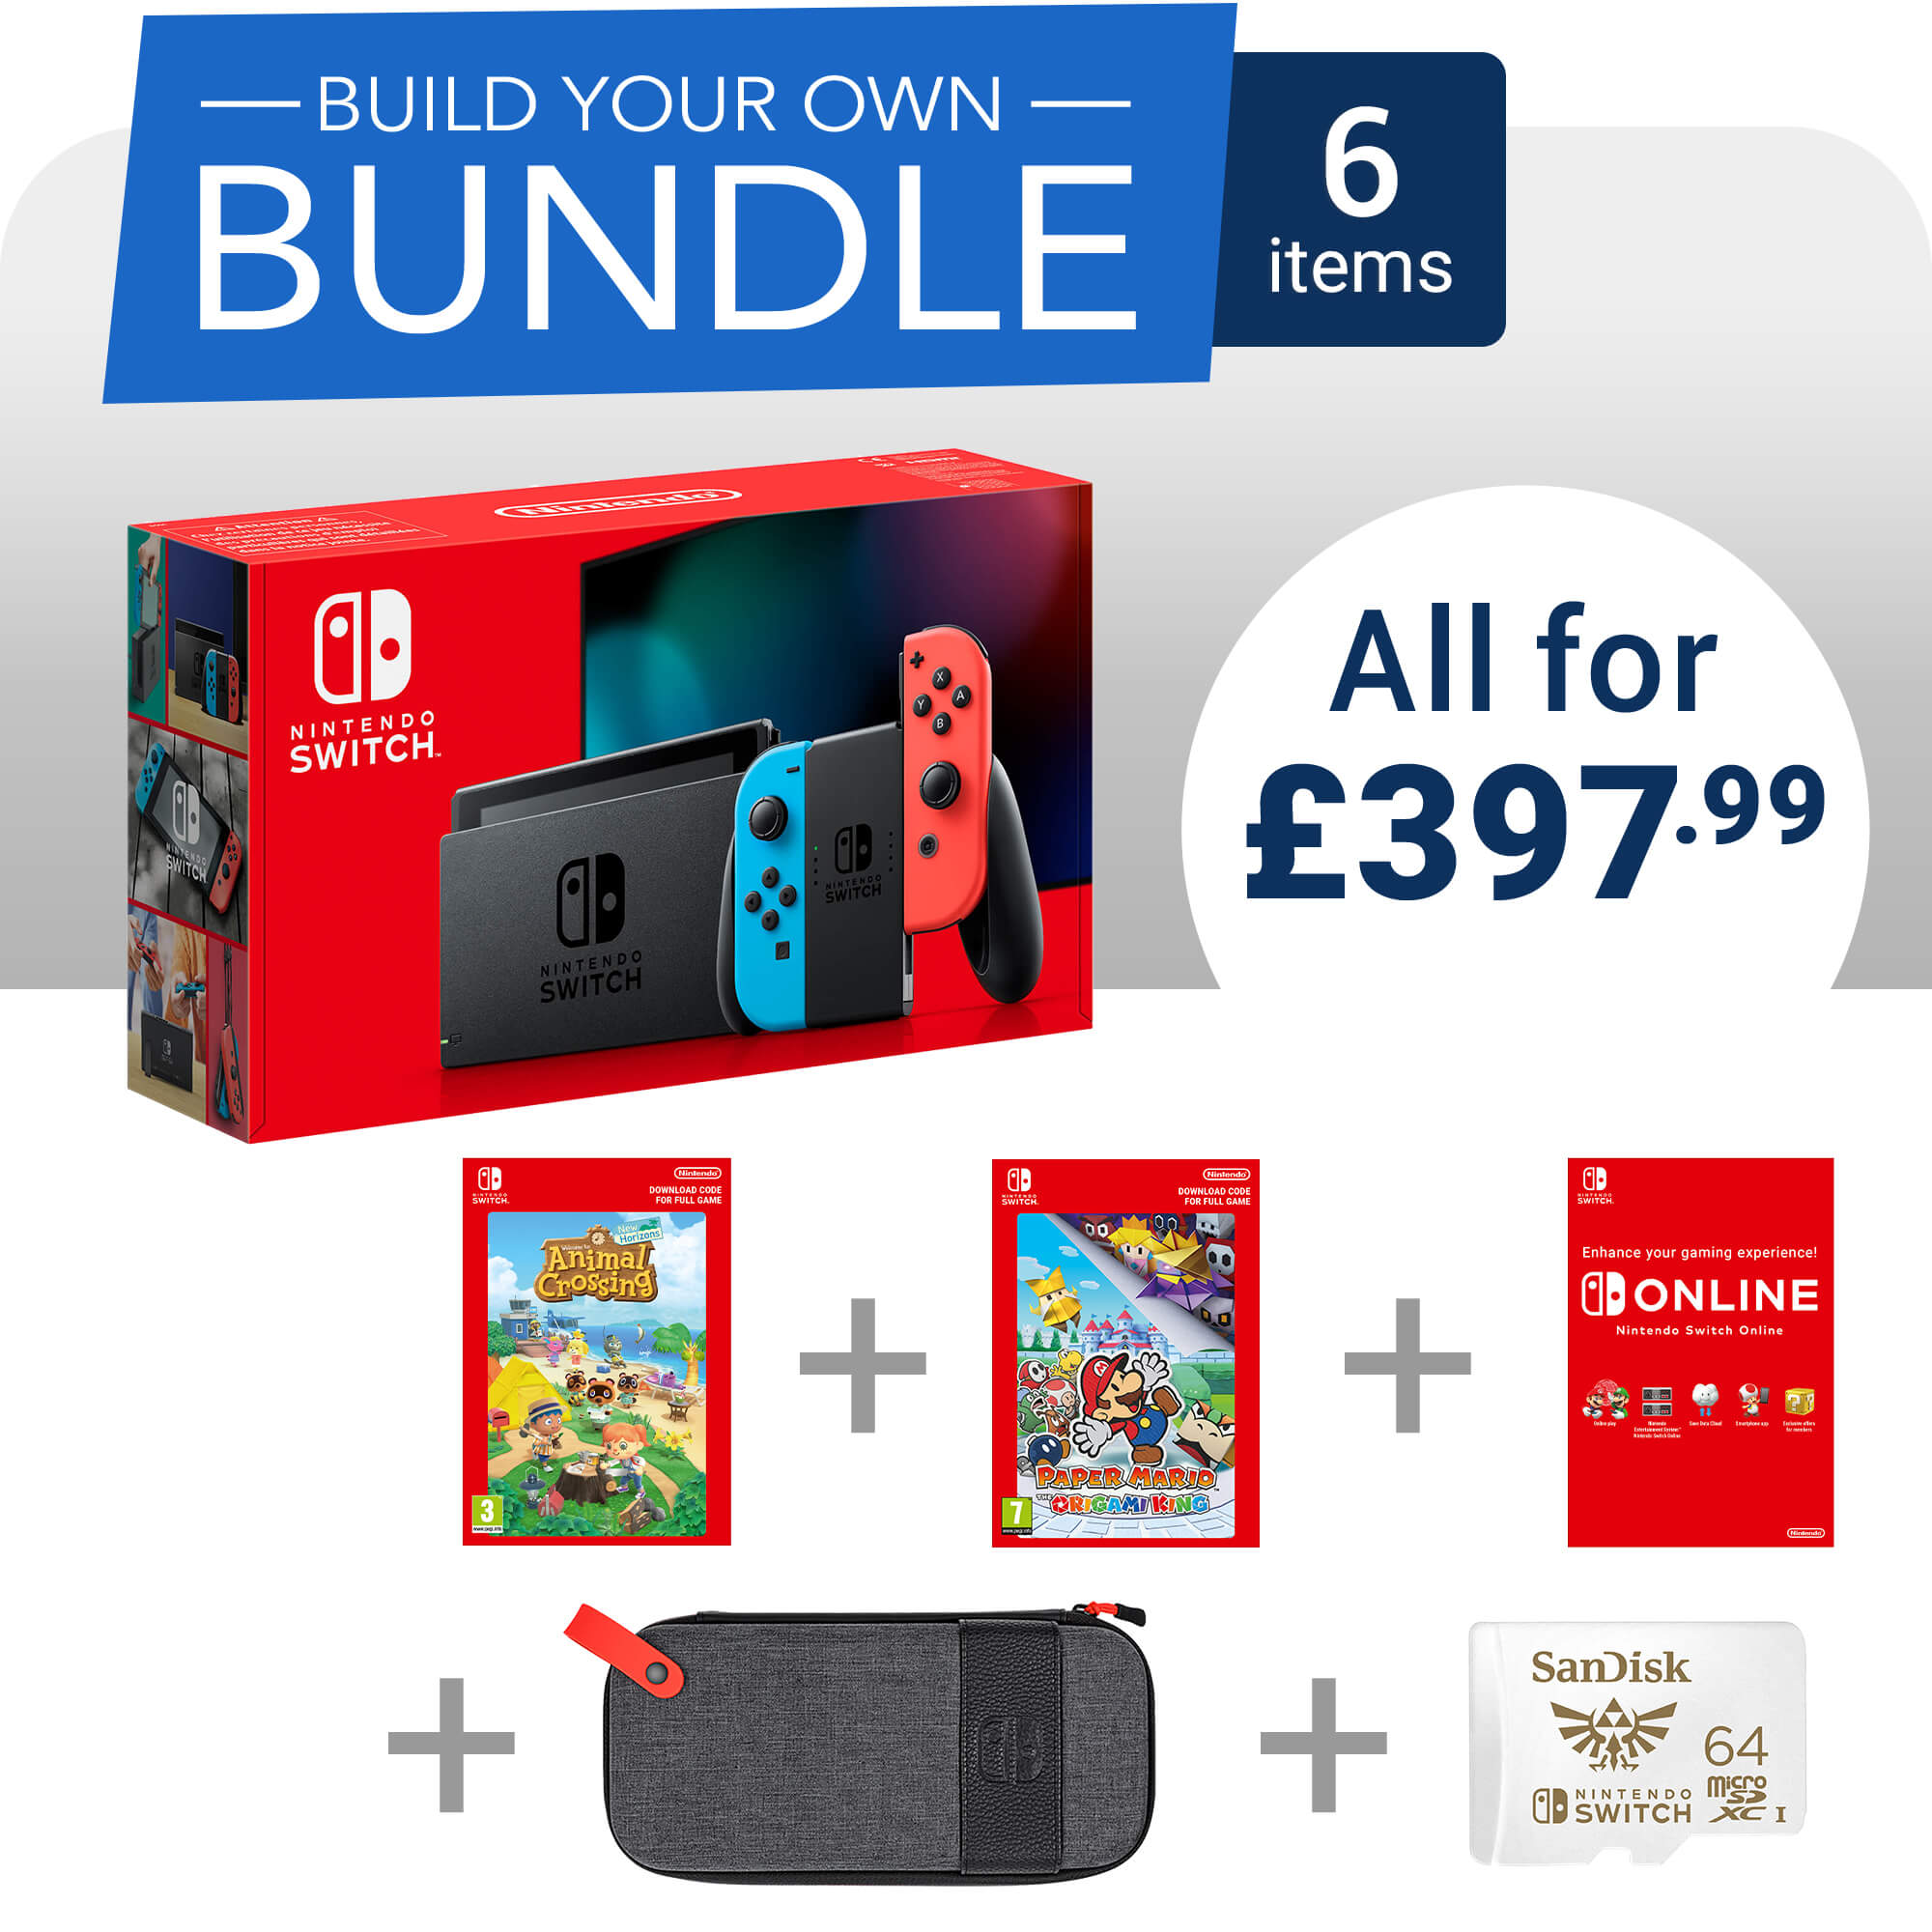 Build your own Nintendo Switch bundle for only £397.99